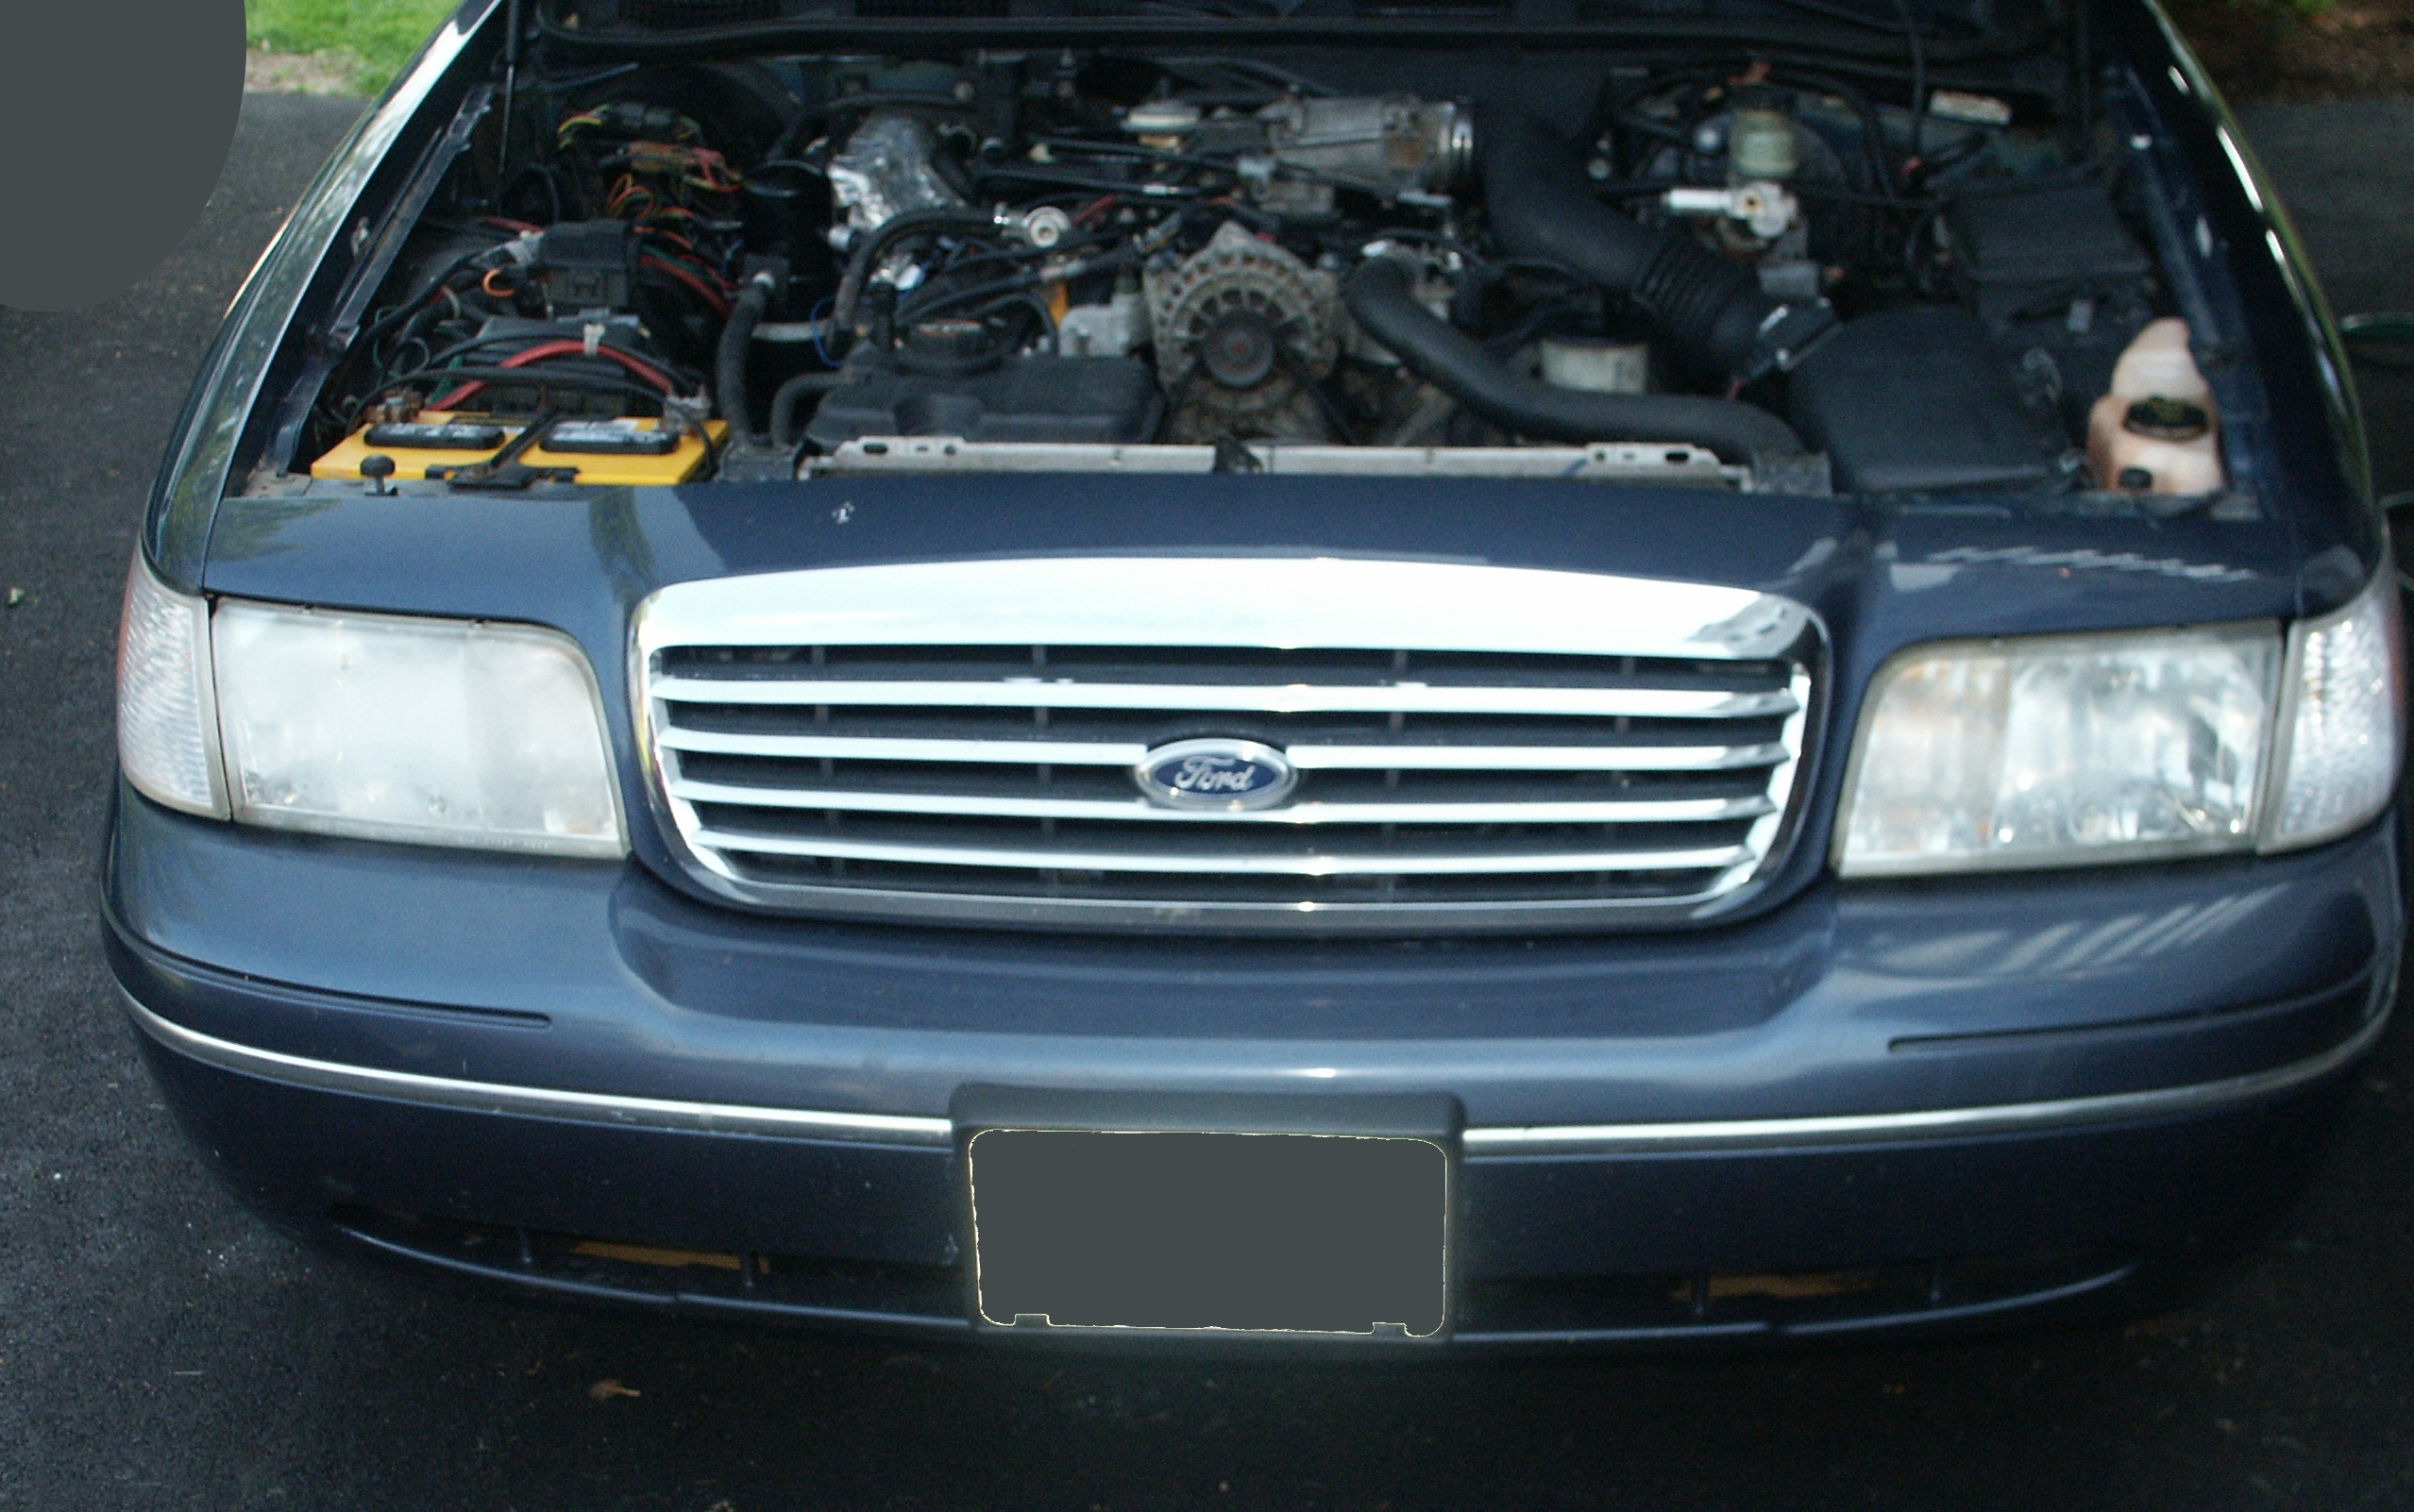 Ford Foggy Yellowed Headlight Lense Repair